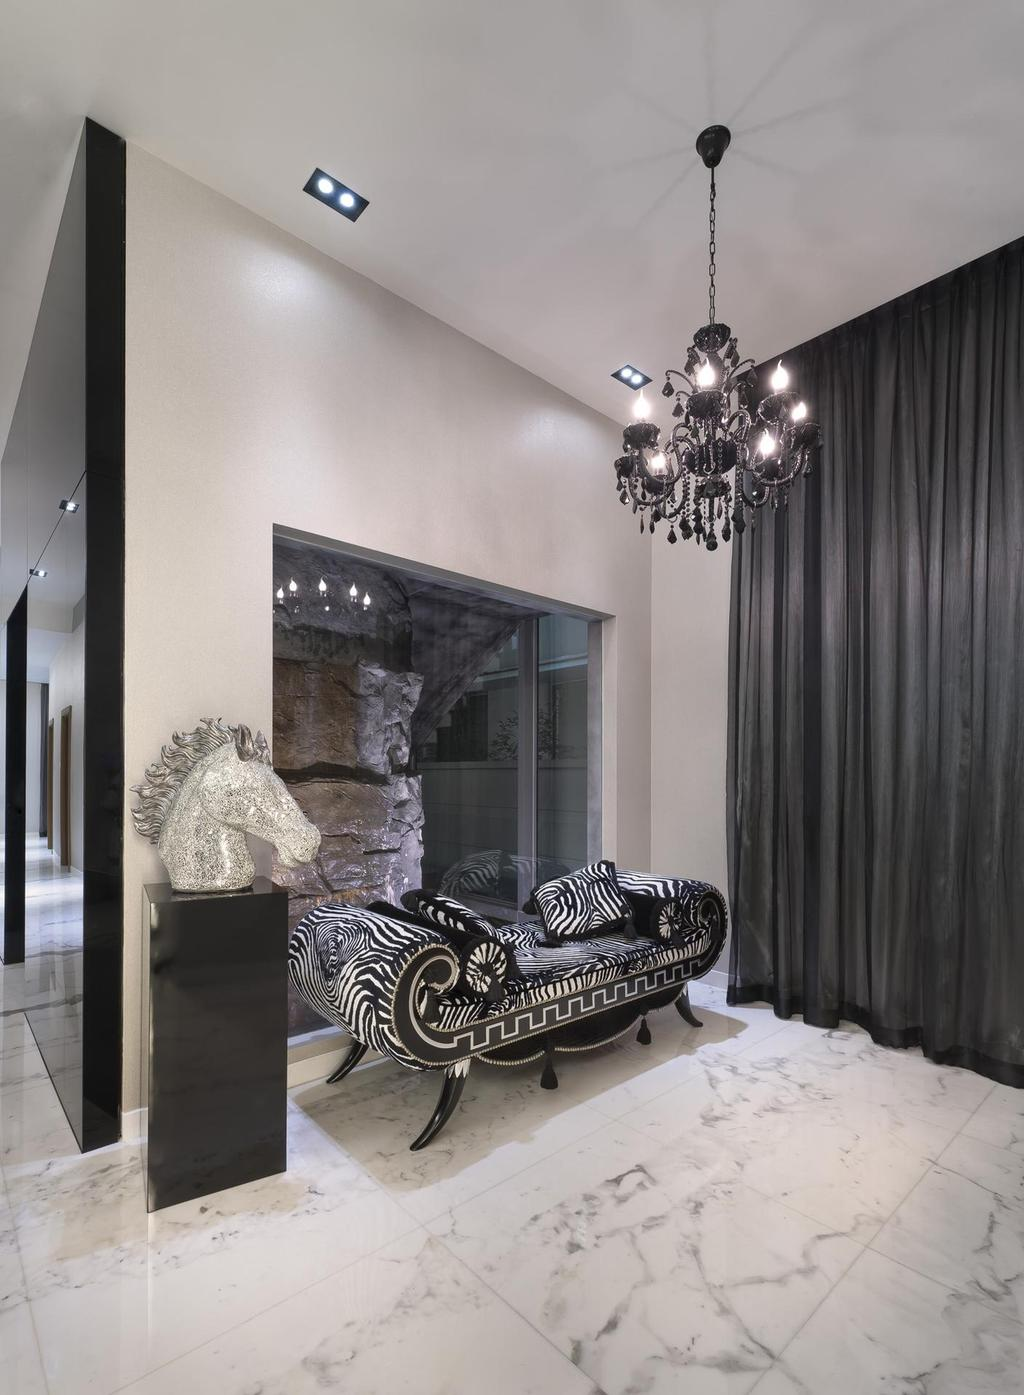 Eclectic, Landed, Thomson Bungalow, Interior Designer, Space Vision Design, Chandelier, Victorian, Monchrome, White, Marble, Flooring, Black, Accents, Veins, Spotlight, Recessed Lighting, Statue, Bench, Curtains, Chair, Furniture